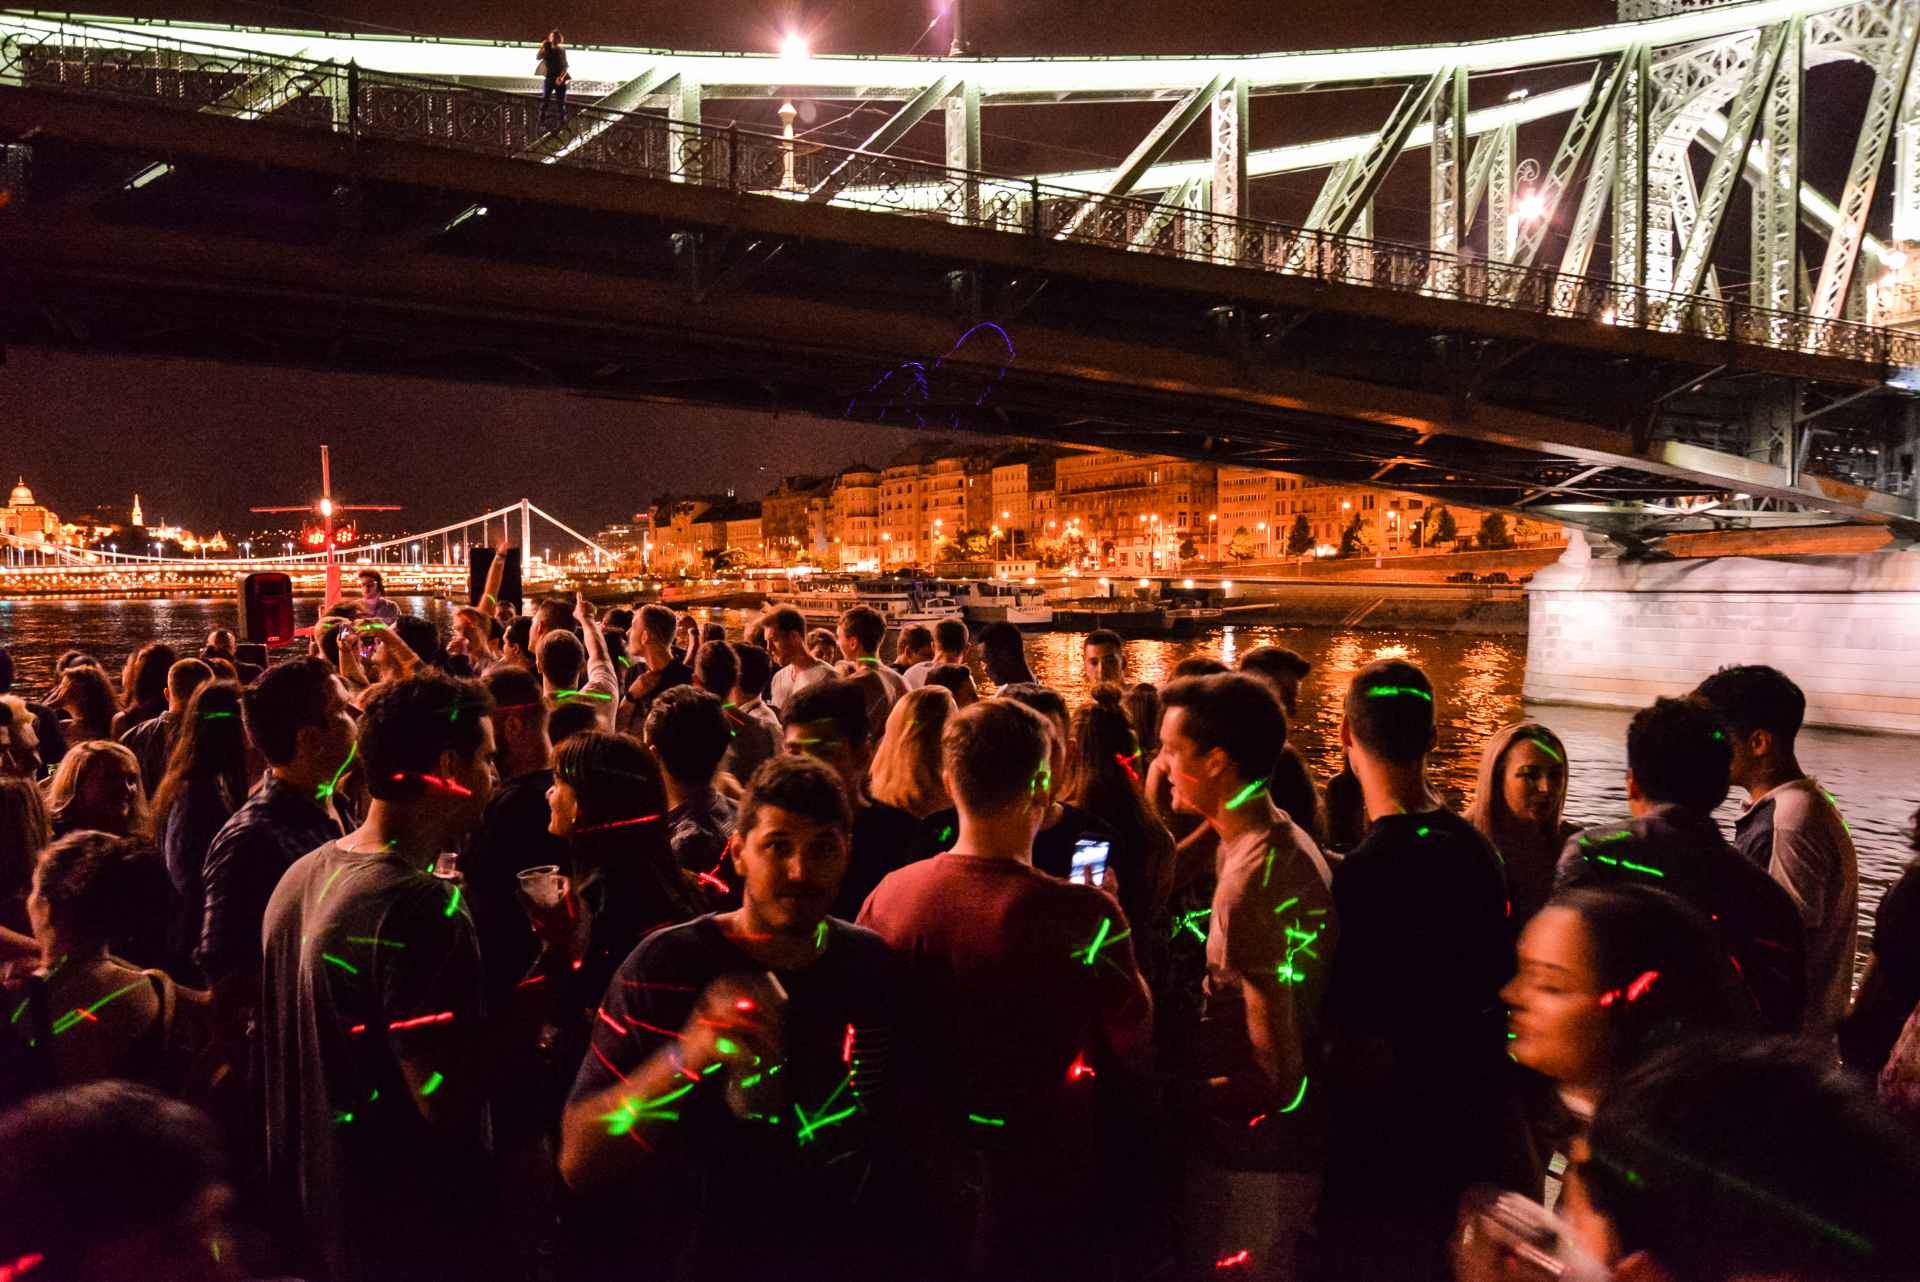 group-of-people-partying-on-a-boat-going-down-a-river-at-night-budapest-boat-party